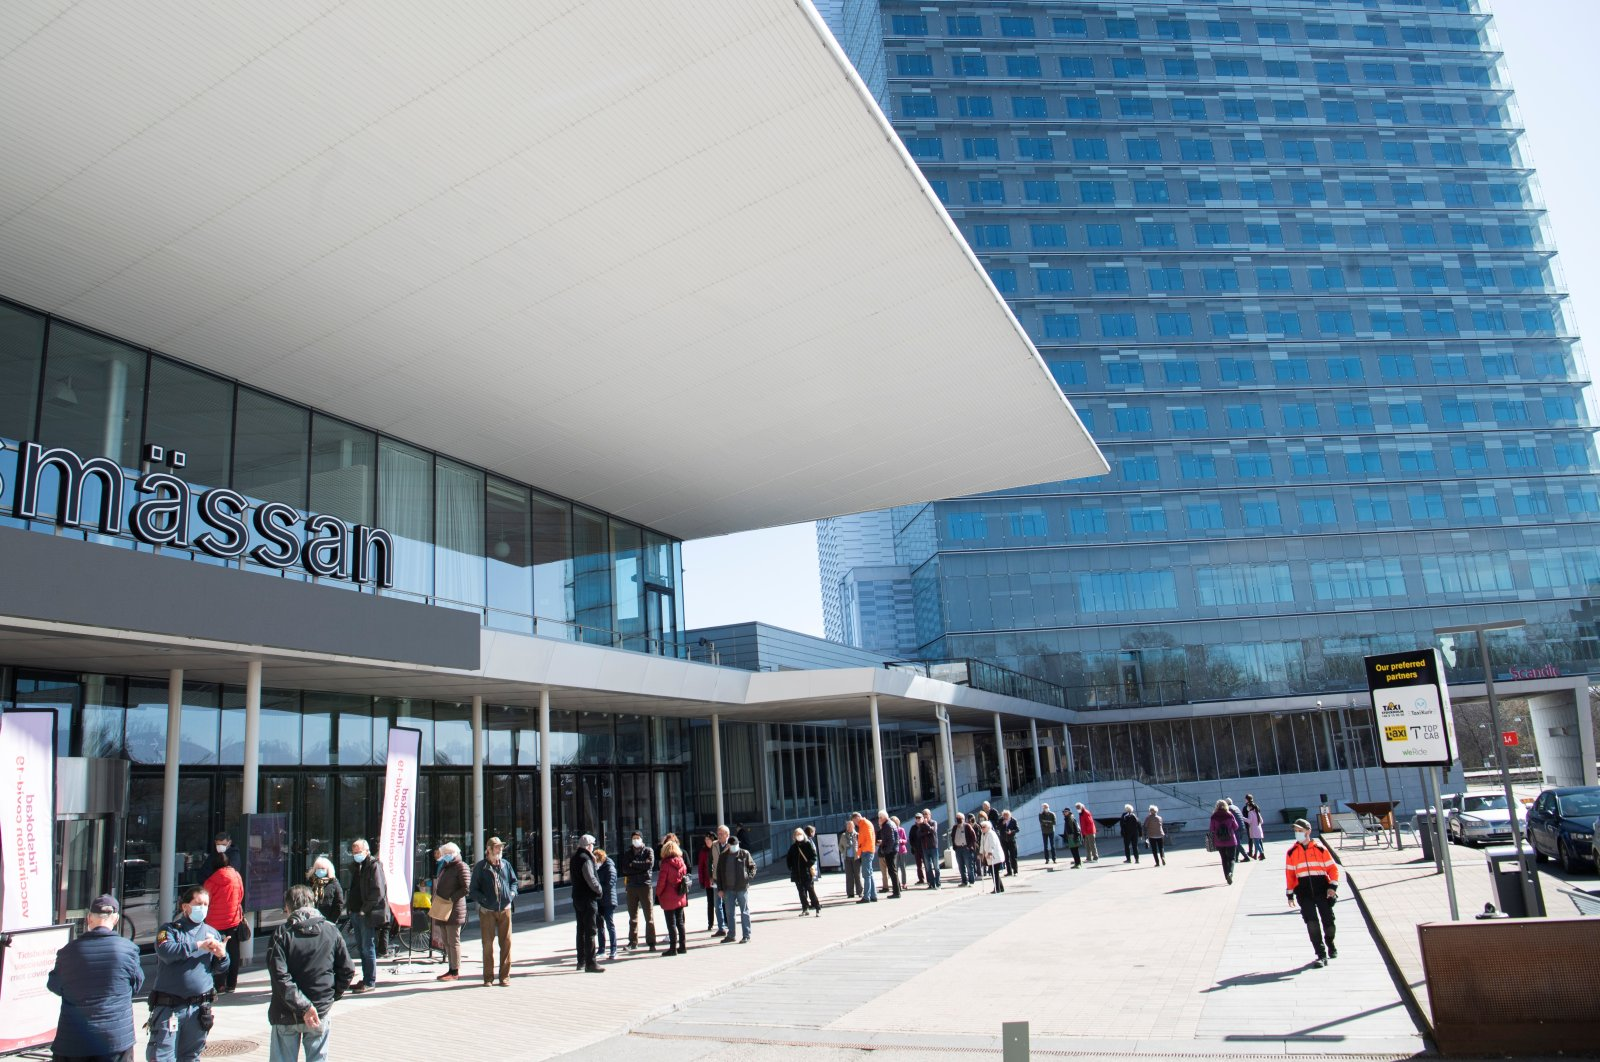 People stand in line to get a vaccine against the coronavirus outside the Stockholmsmassan exhibition center, turned mass vaccination center, in Stockholm, Sweden, Apr. 8, 2021. (REUTERS Photo)